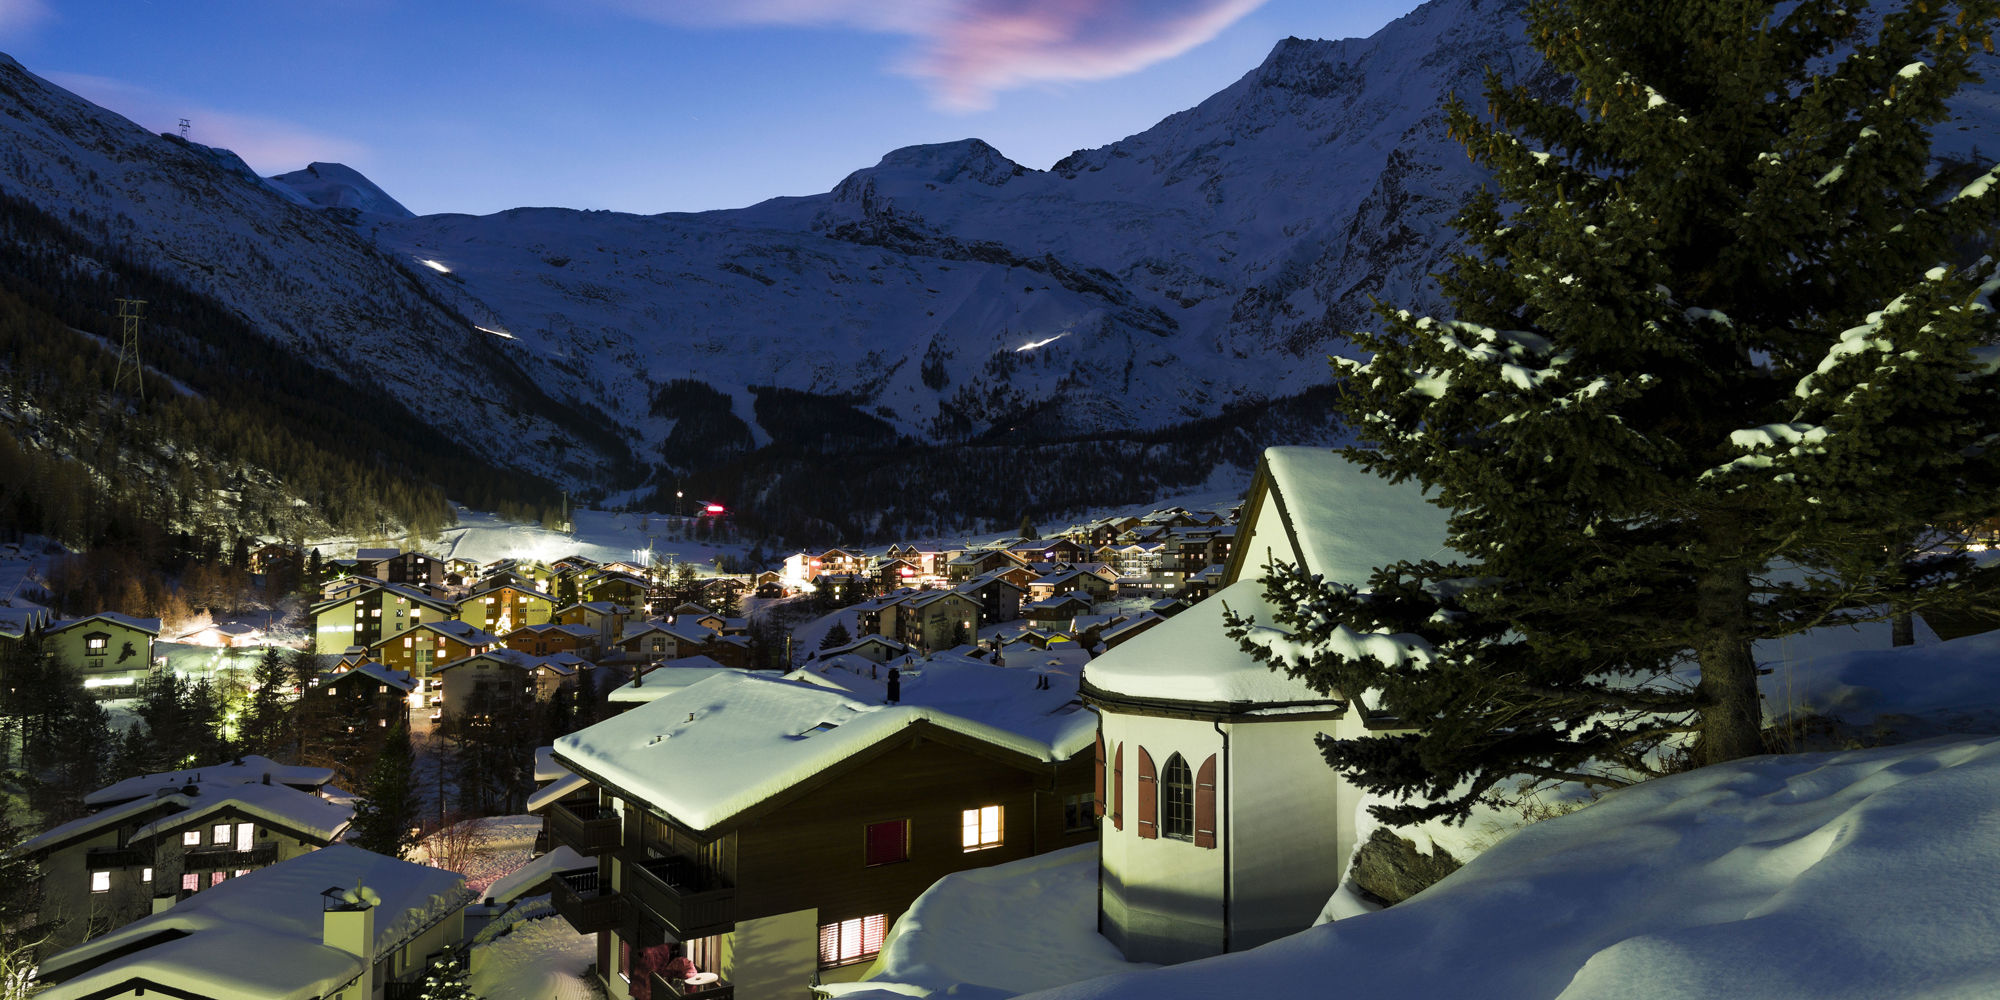 [Translate to English:] Saas-Fee bei Nacht